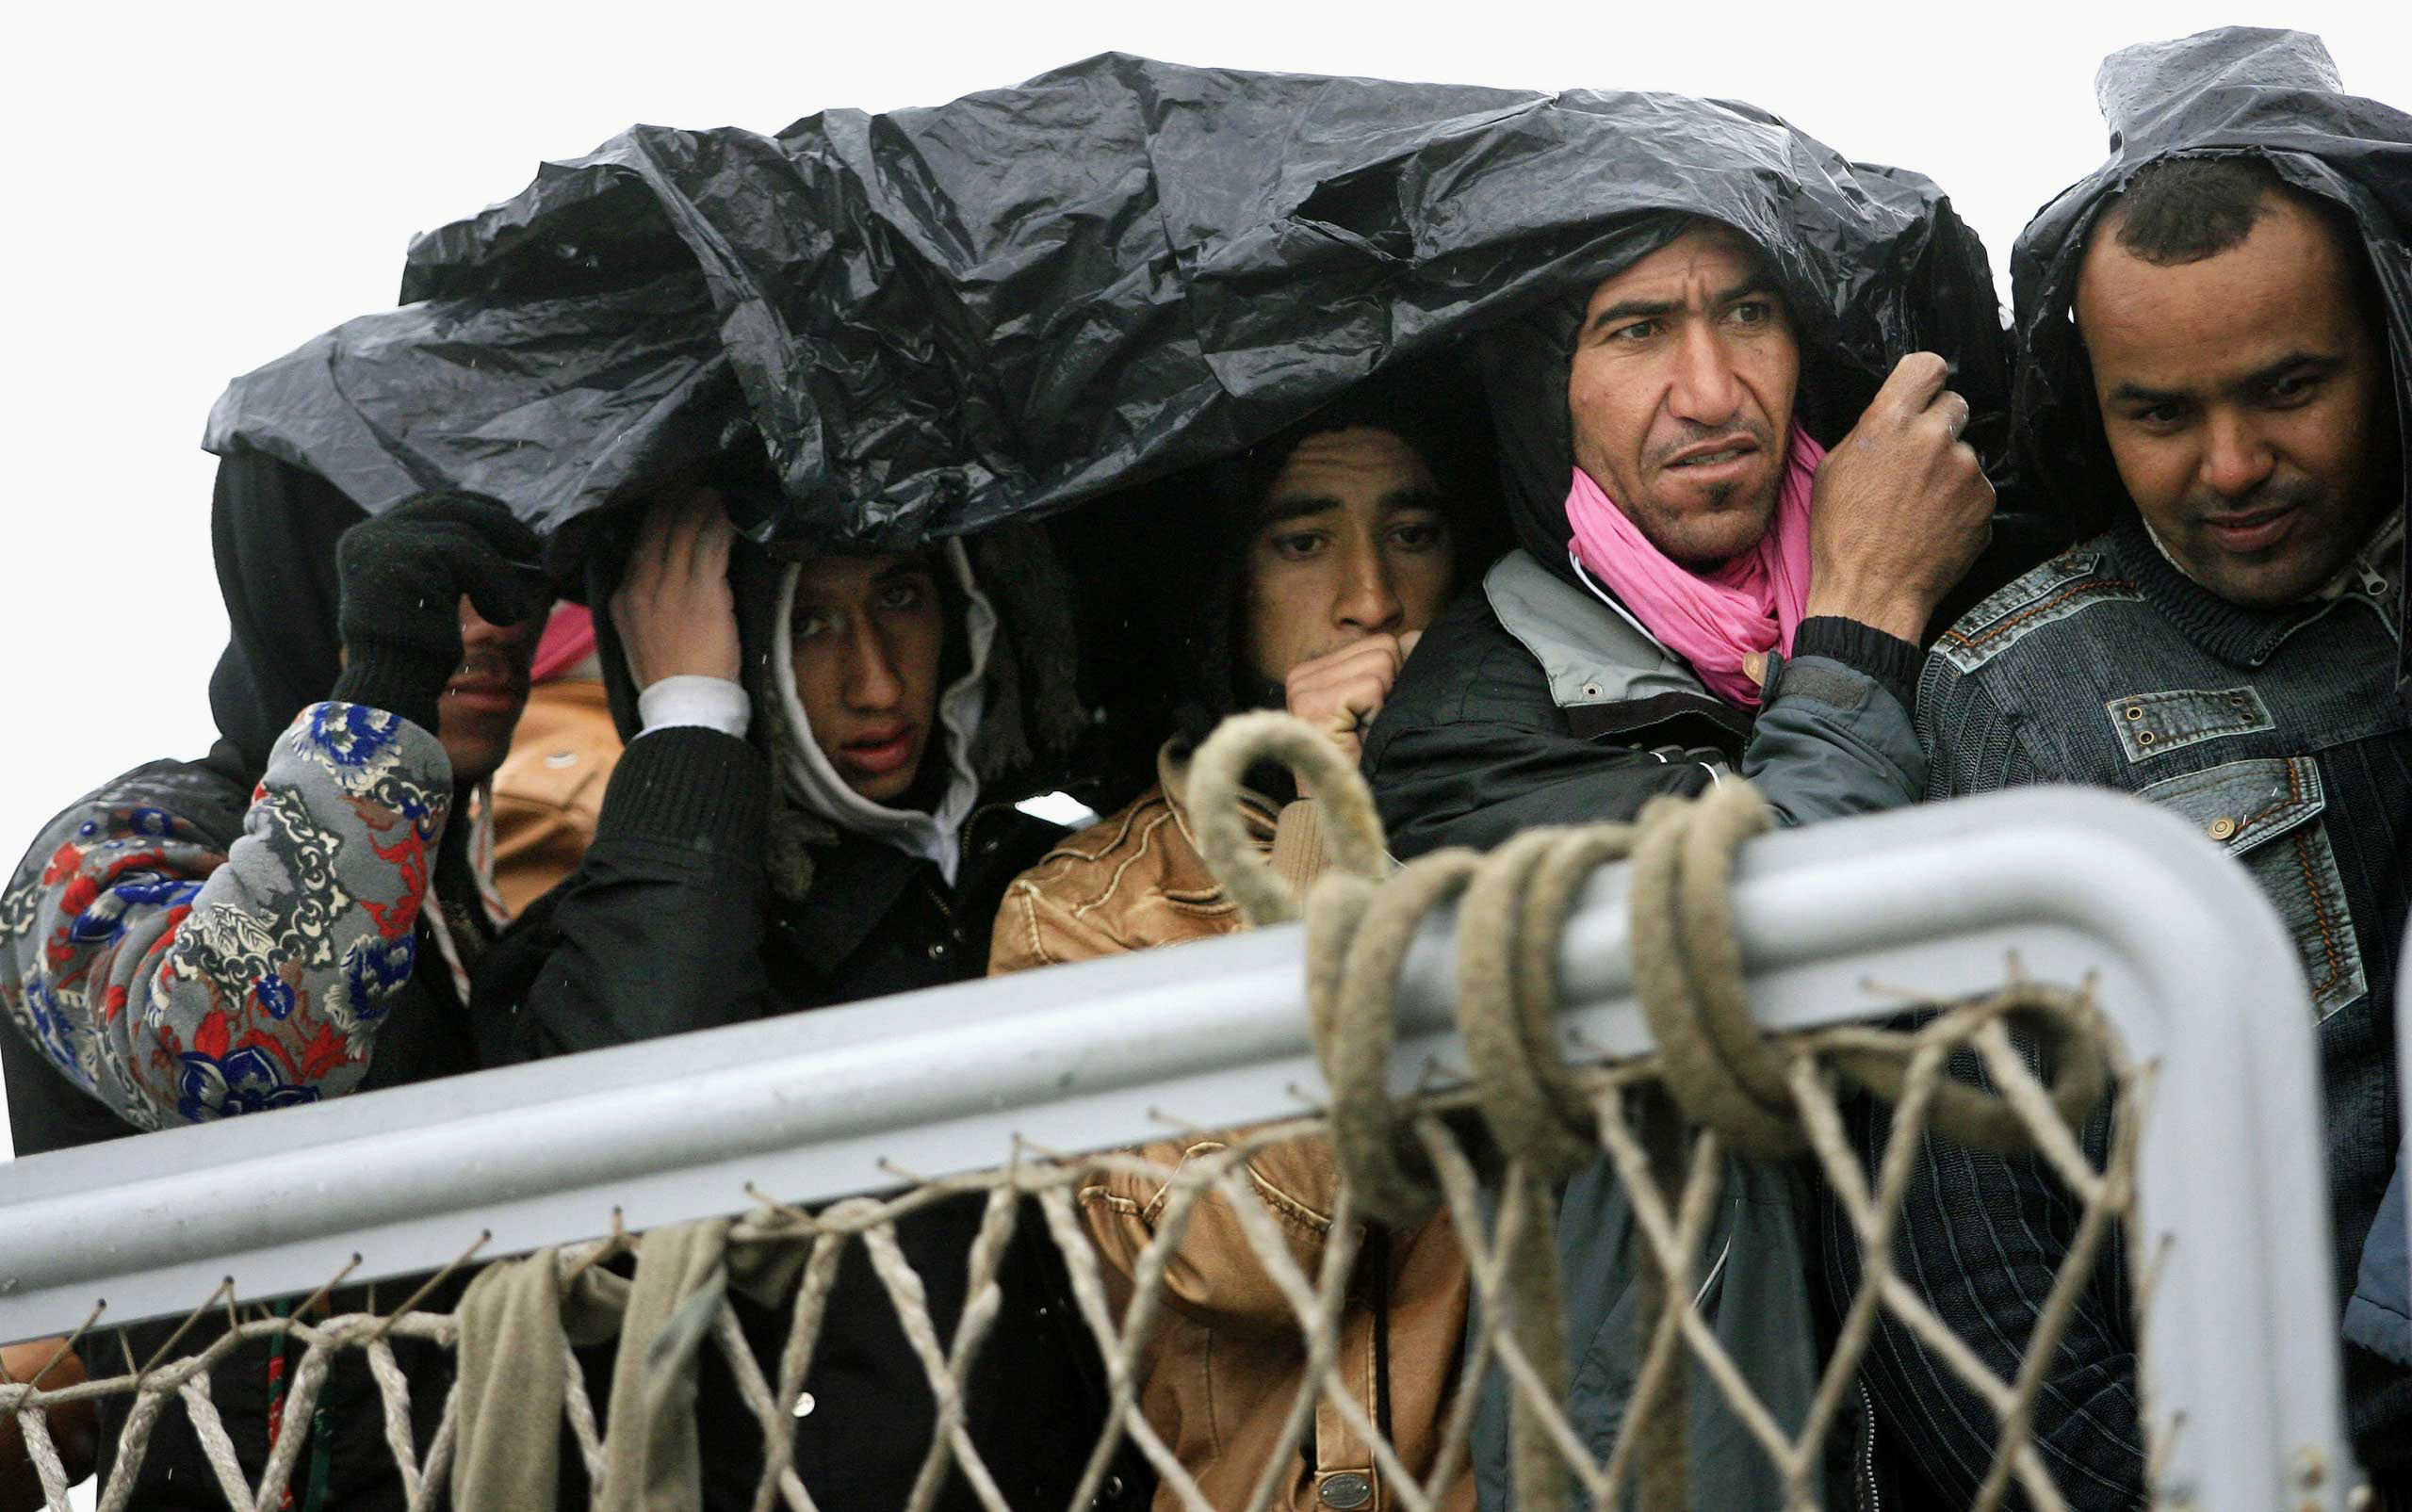 Migrants protect themselves from the rain as they wait to disembark from a ship on Feb. 17, 2015 in Porto Empedocle, south Sicily, following a rescue operation of migrants as part of the International Frontex plan.